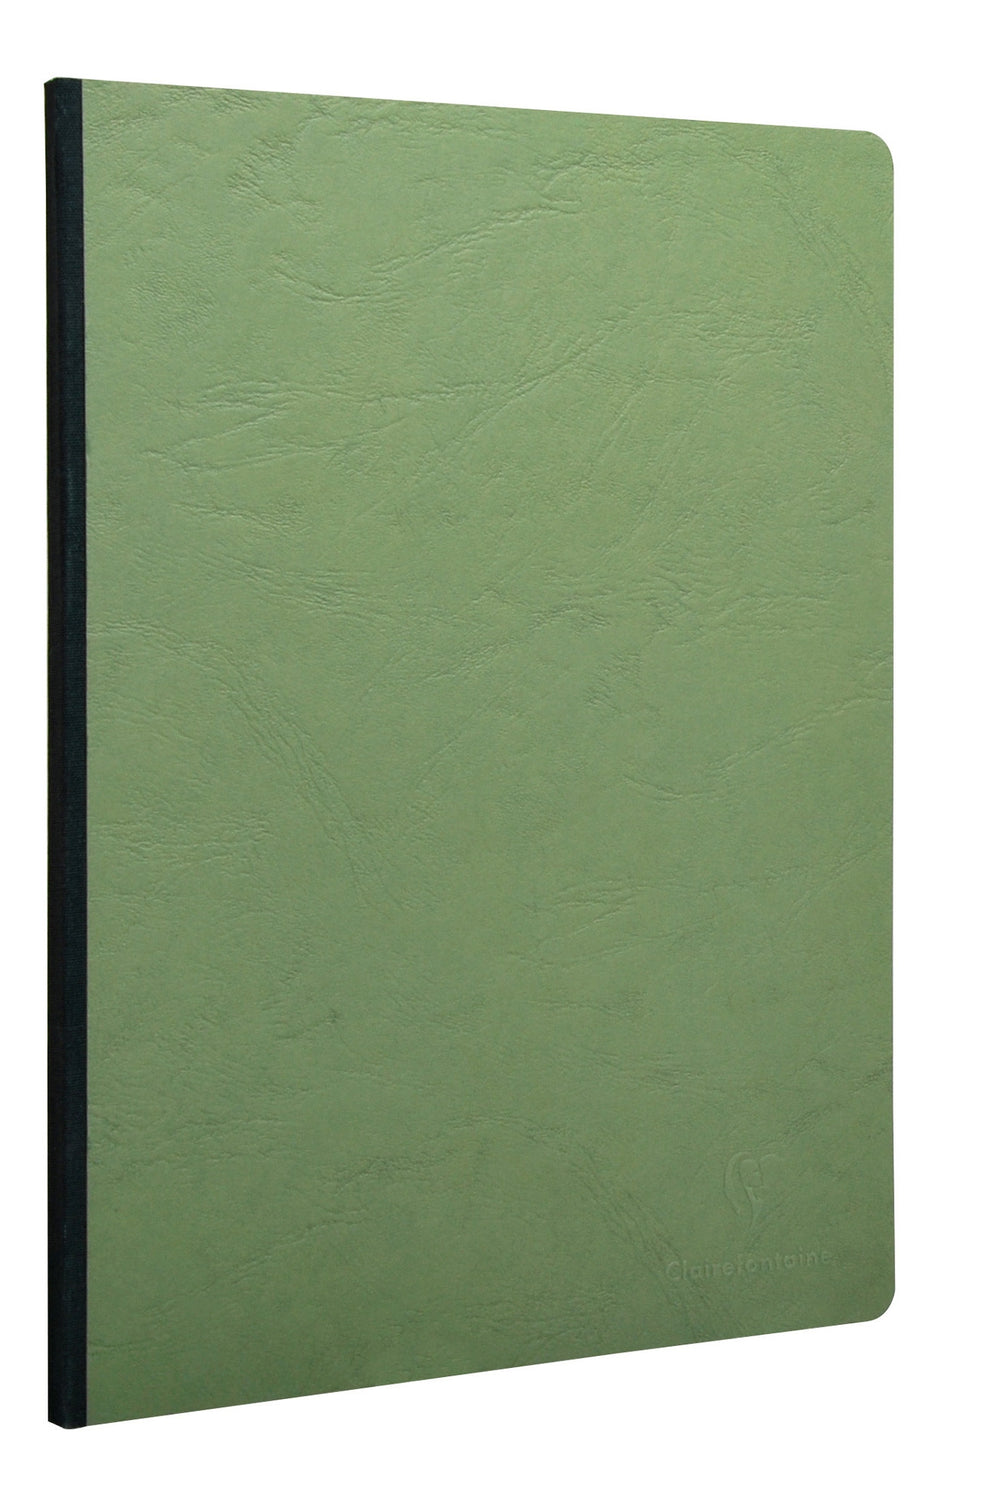 Clairefontaine Basics A4 Side Clothbound Notebook- Green, Lined